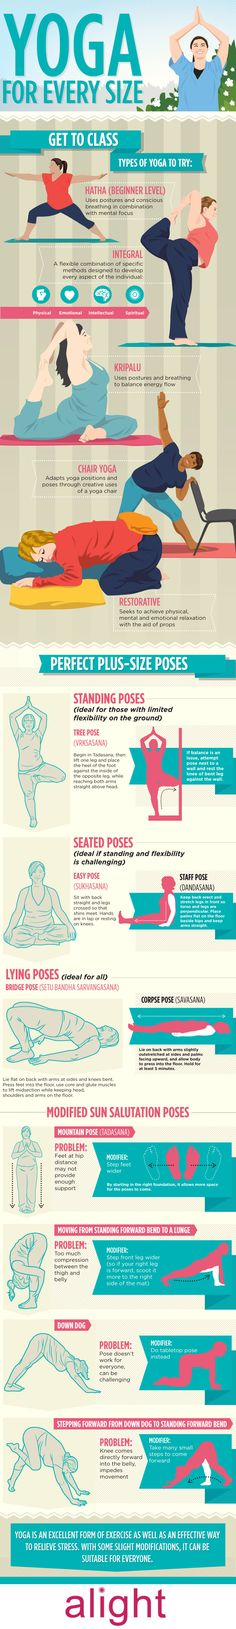 Yoga For Every Size: A Guide To Plus-Size Yoga  [by  Alight -- via #tipsographic]. More at tipsographic.com